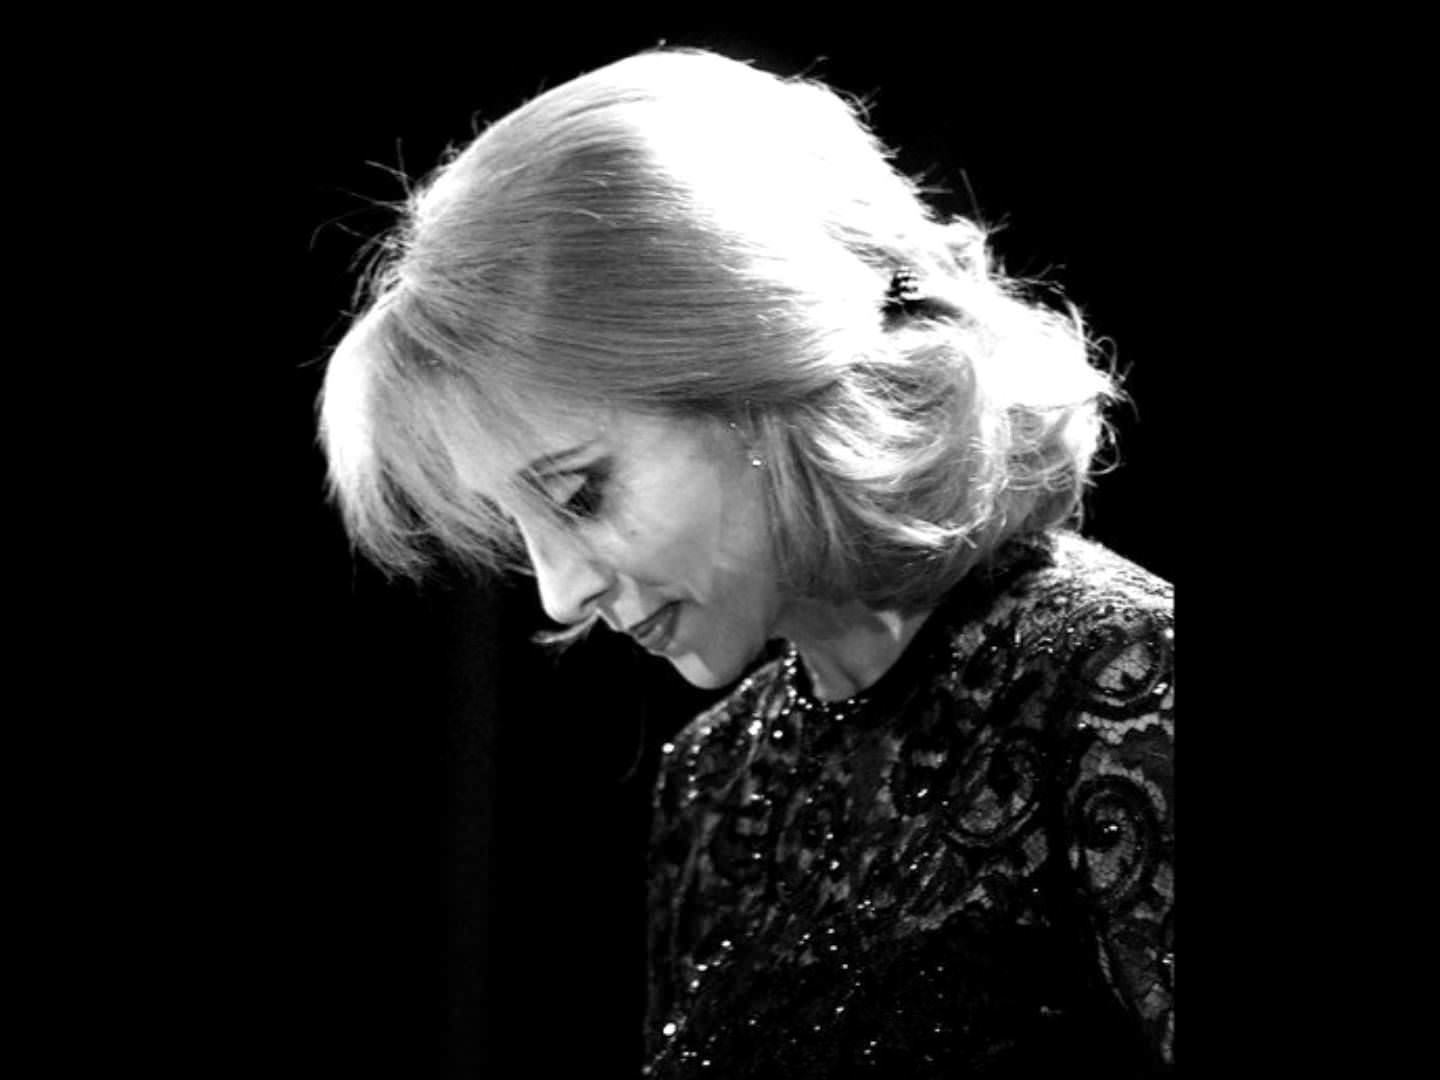 Fairouz Songs with regard to 15 essential fairuz songs to add to your playlist - project revolver